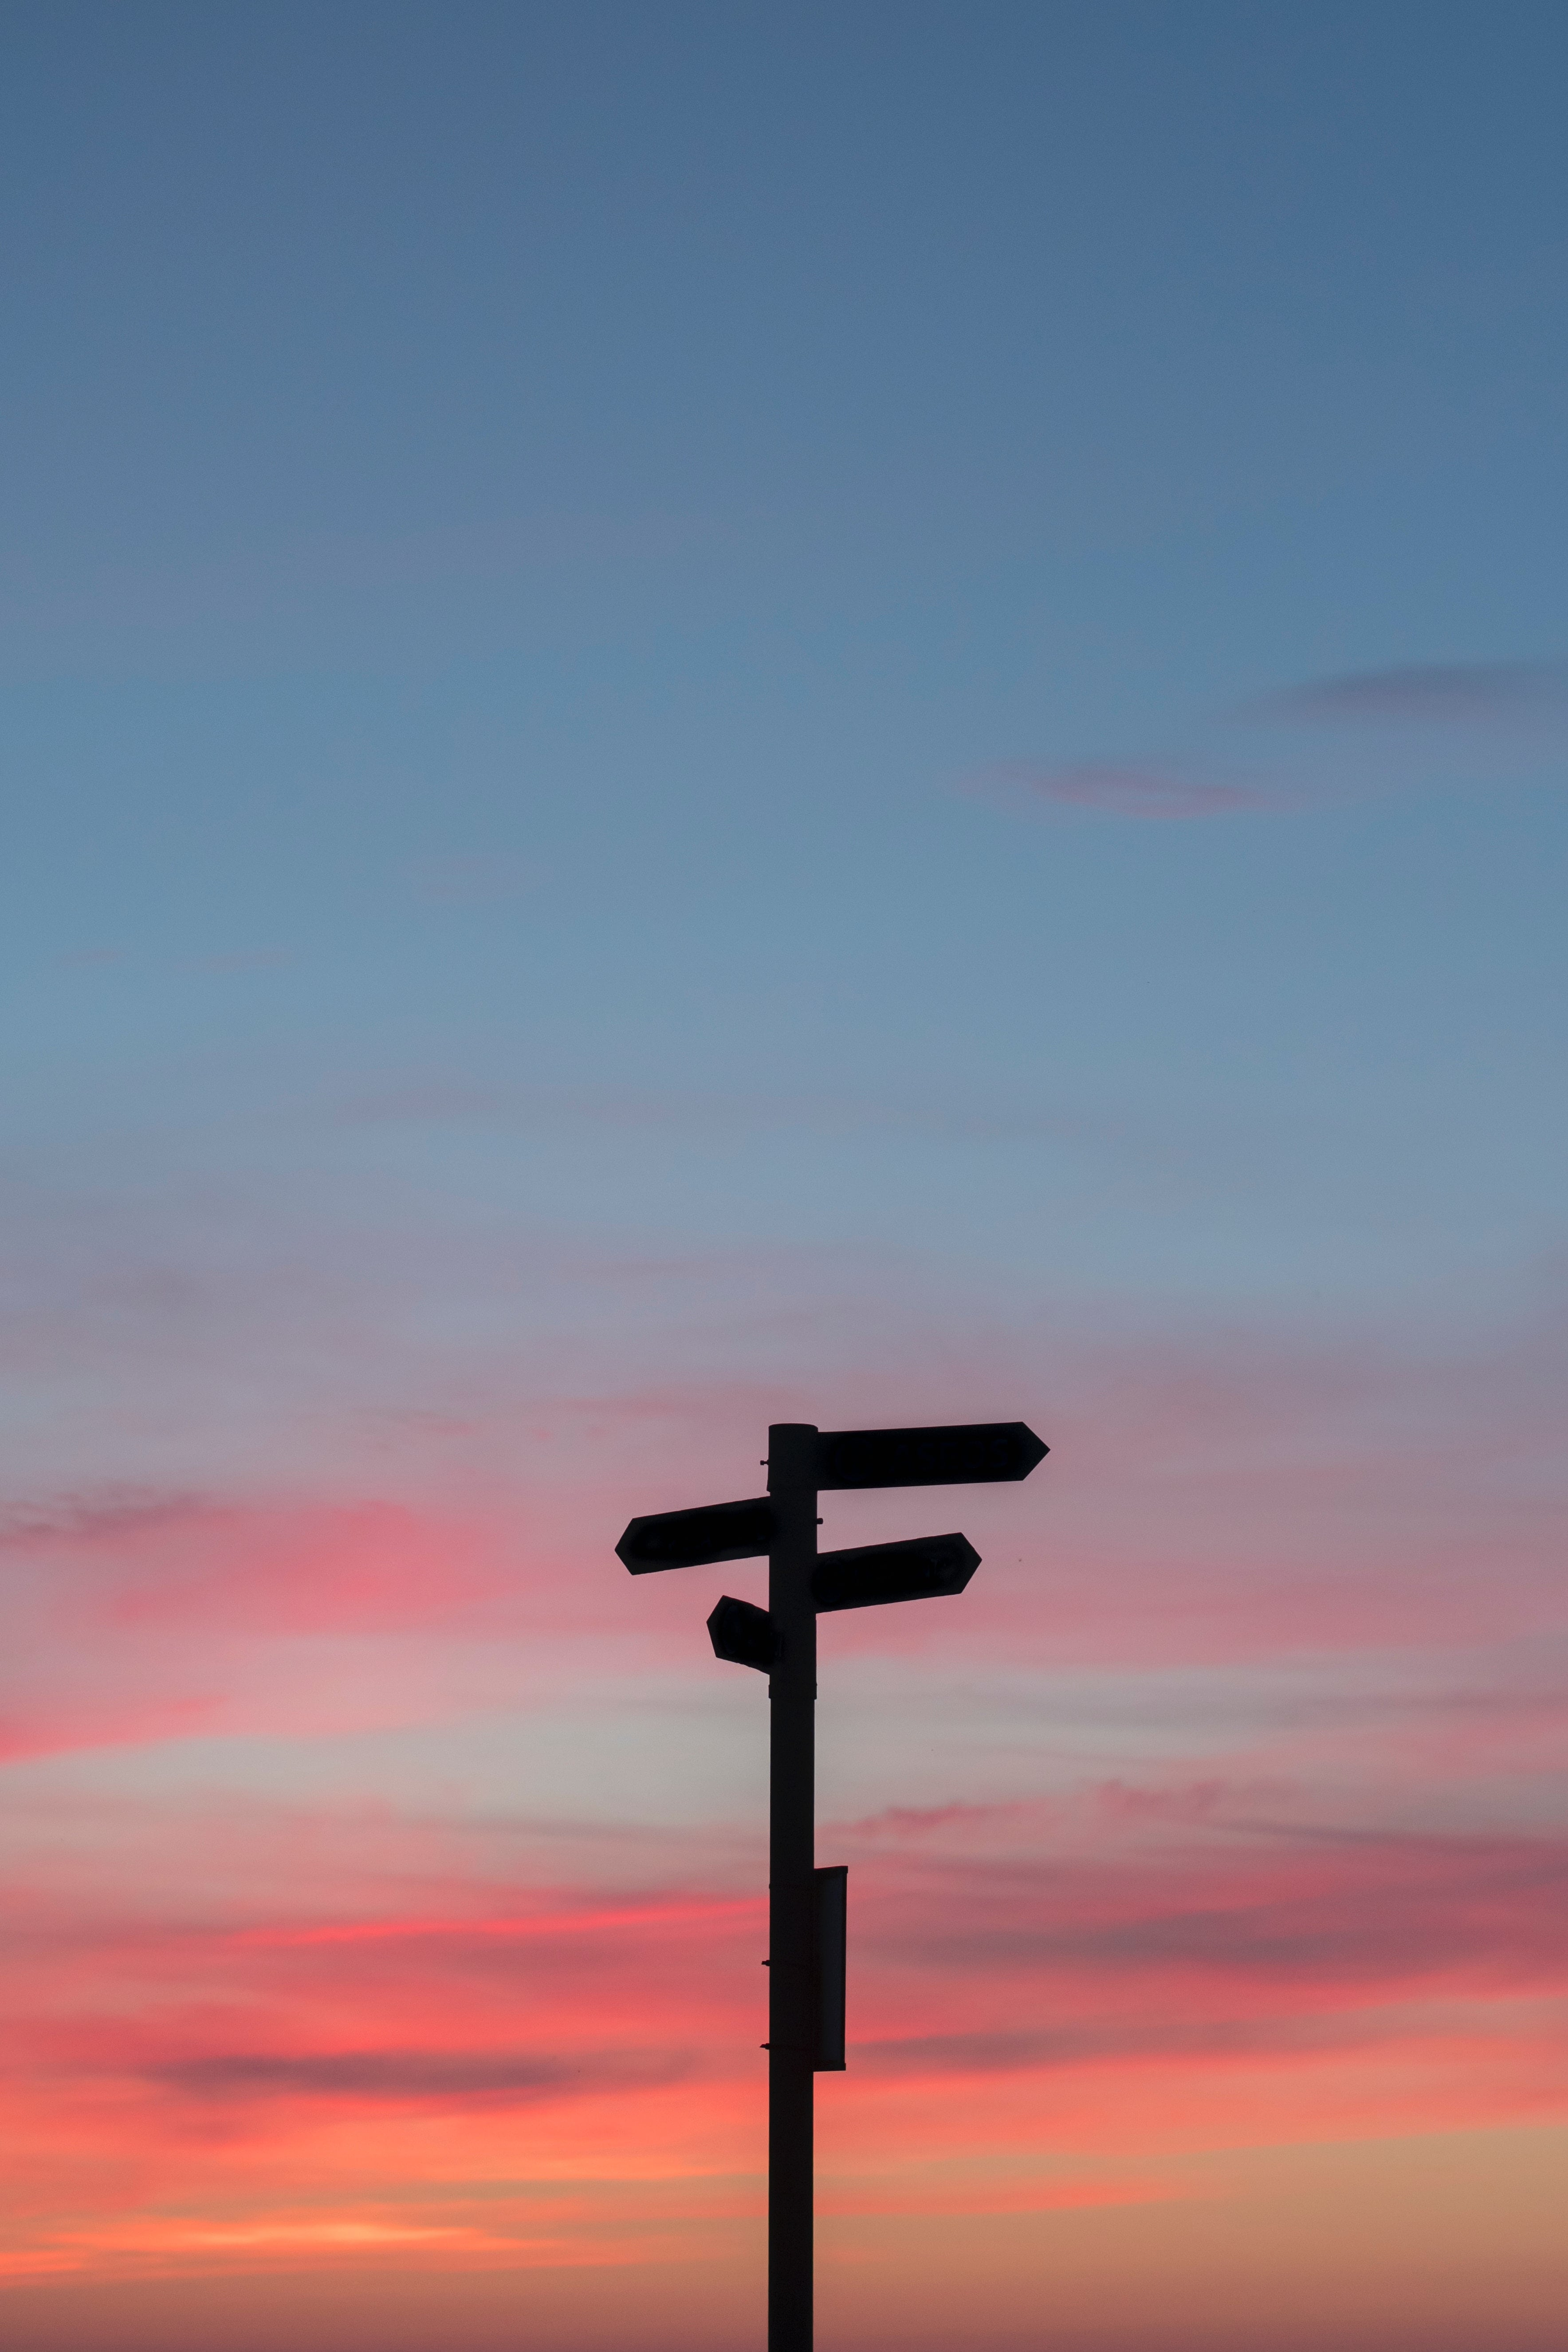 Silhouette of road signs. Partnerships with The Mix Stowmarket